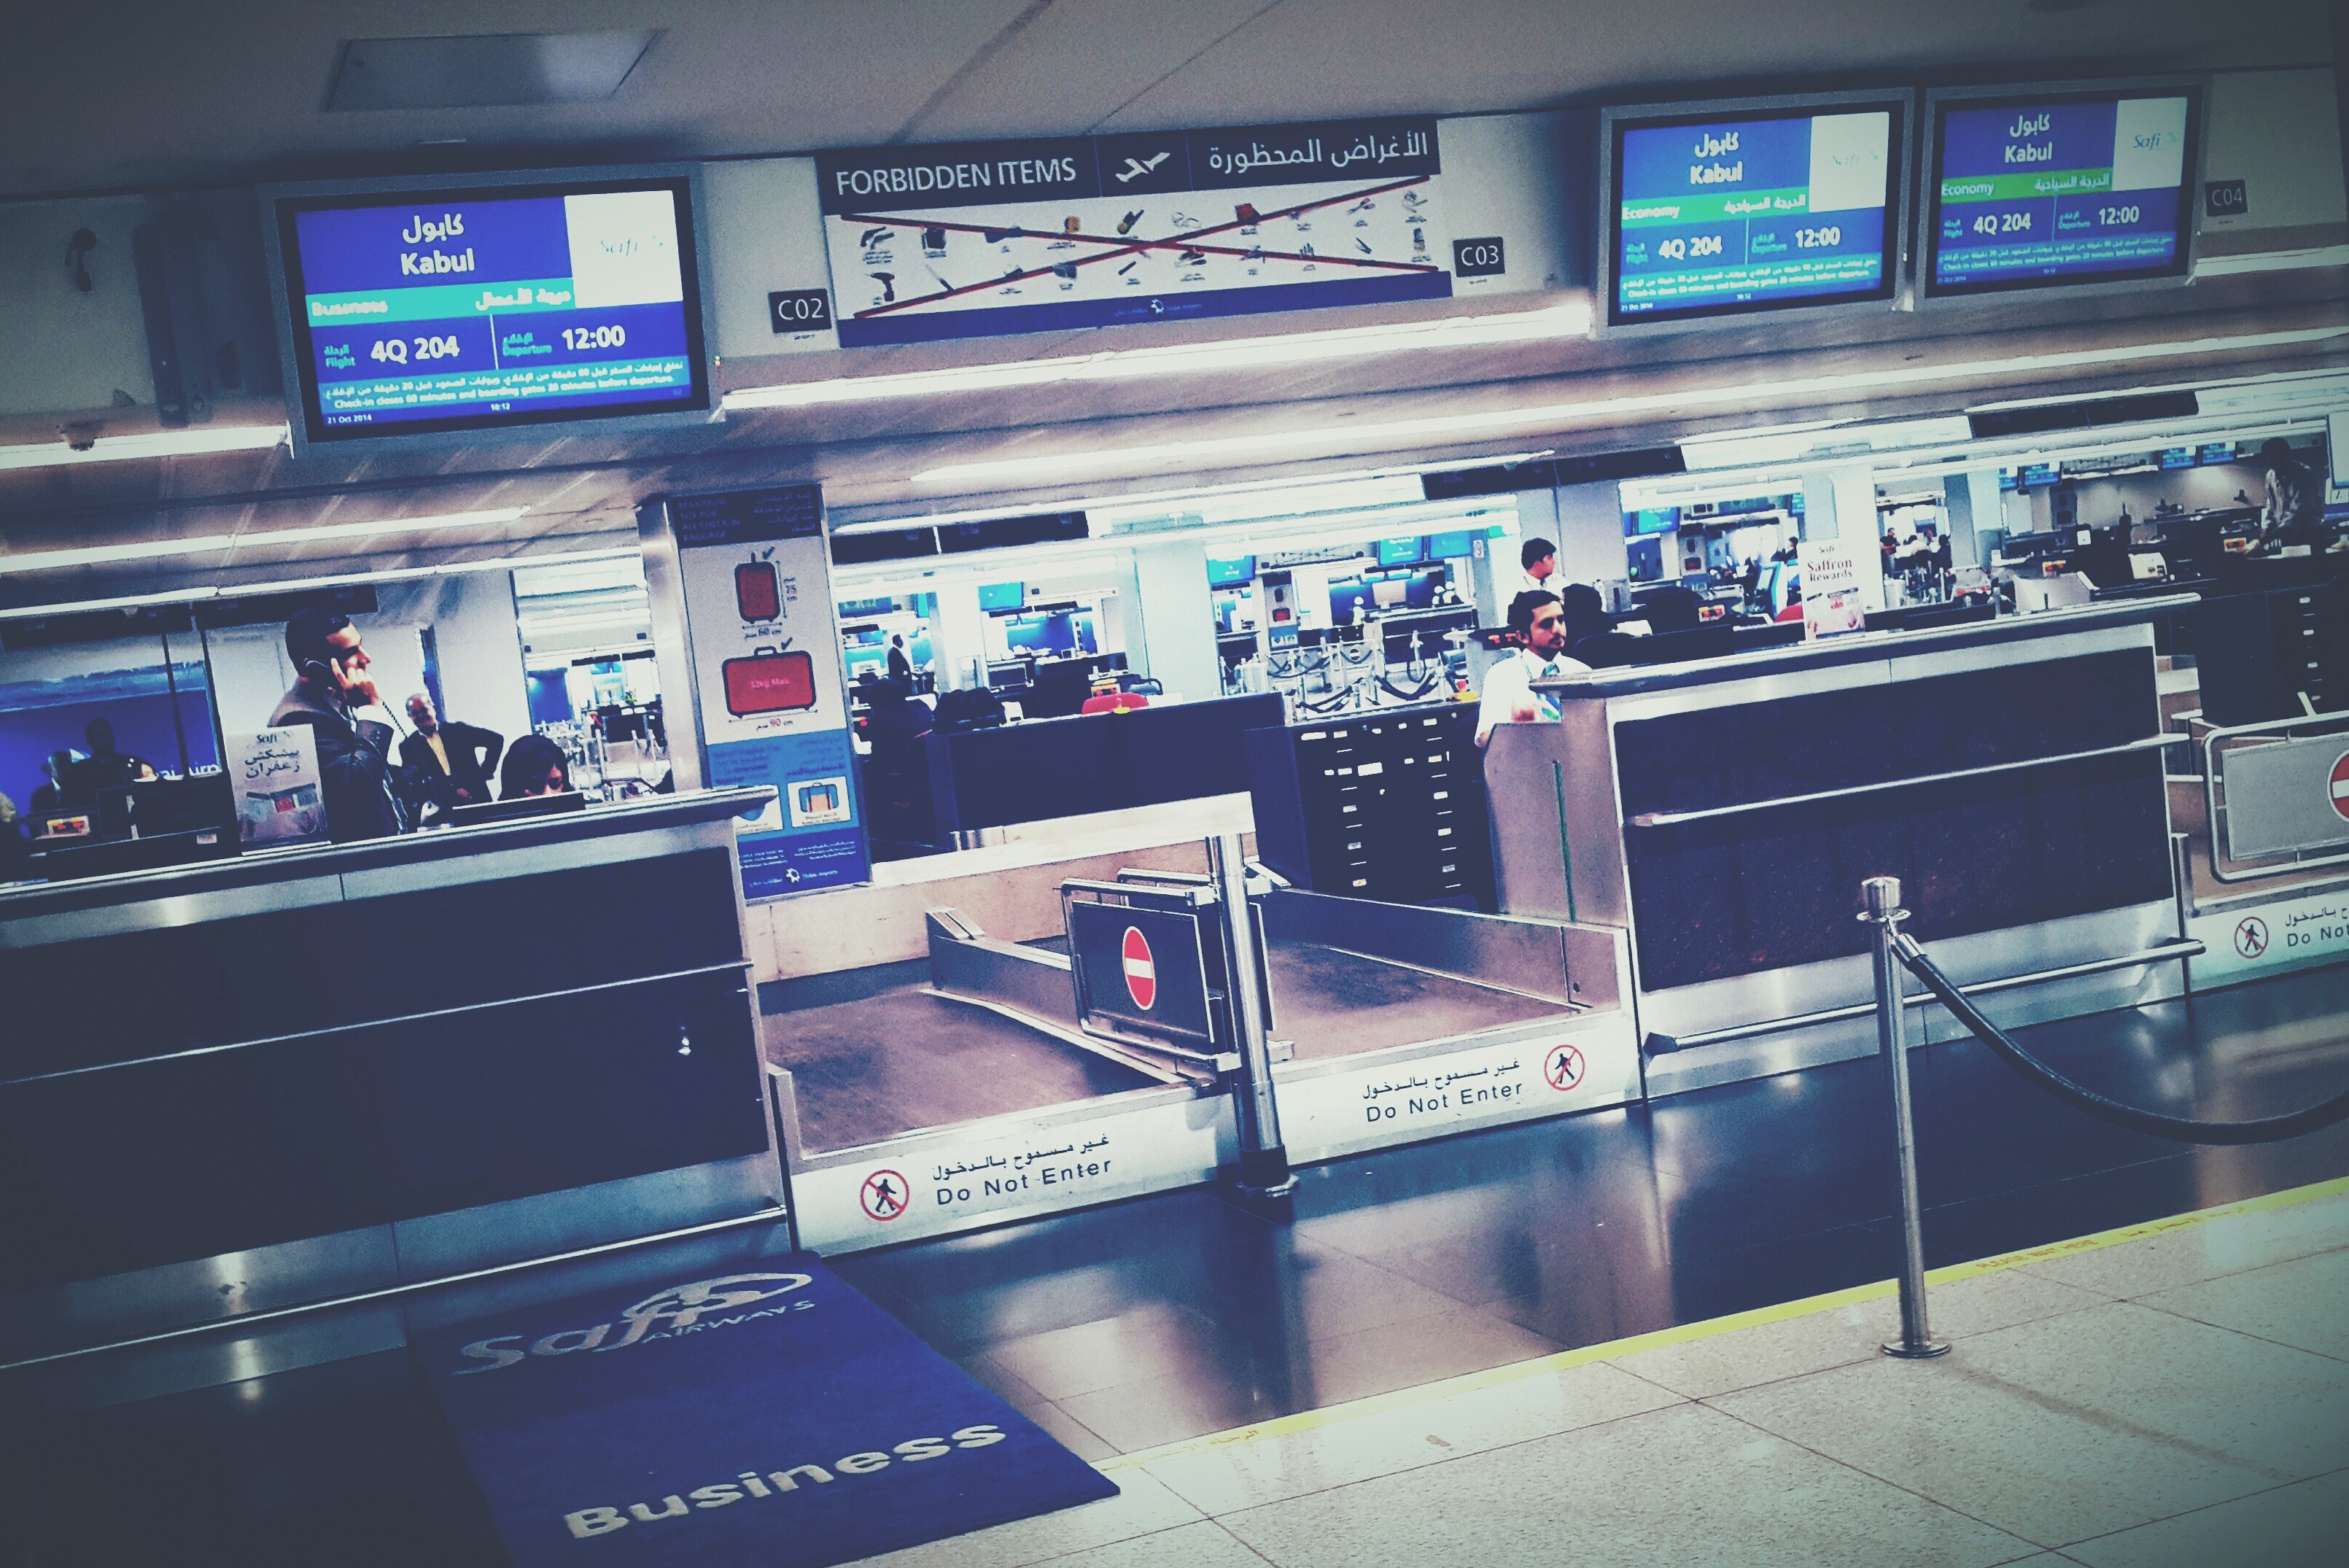 Check in counter for Safi Airways at Dubai International Airport